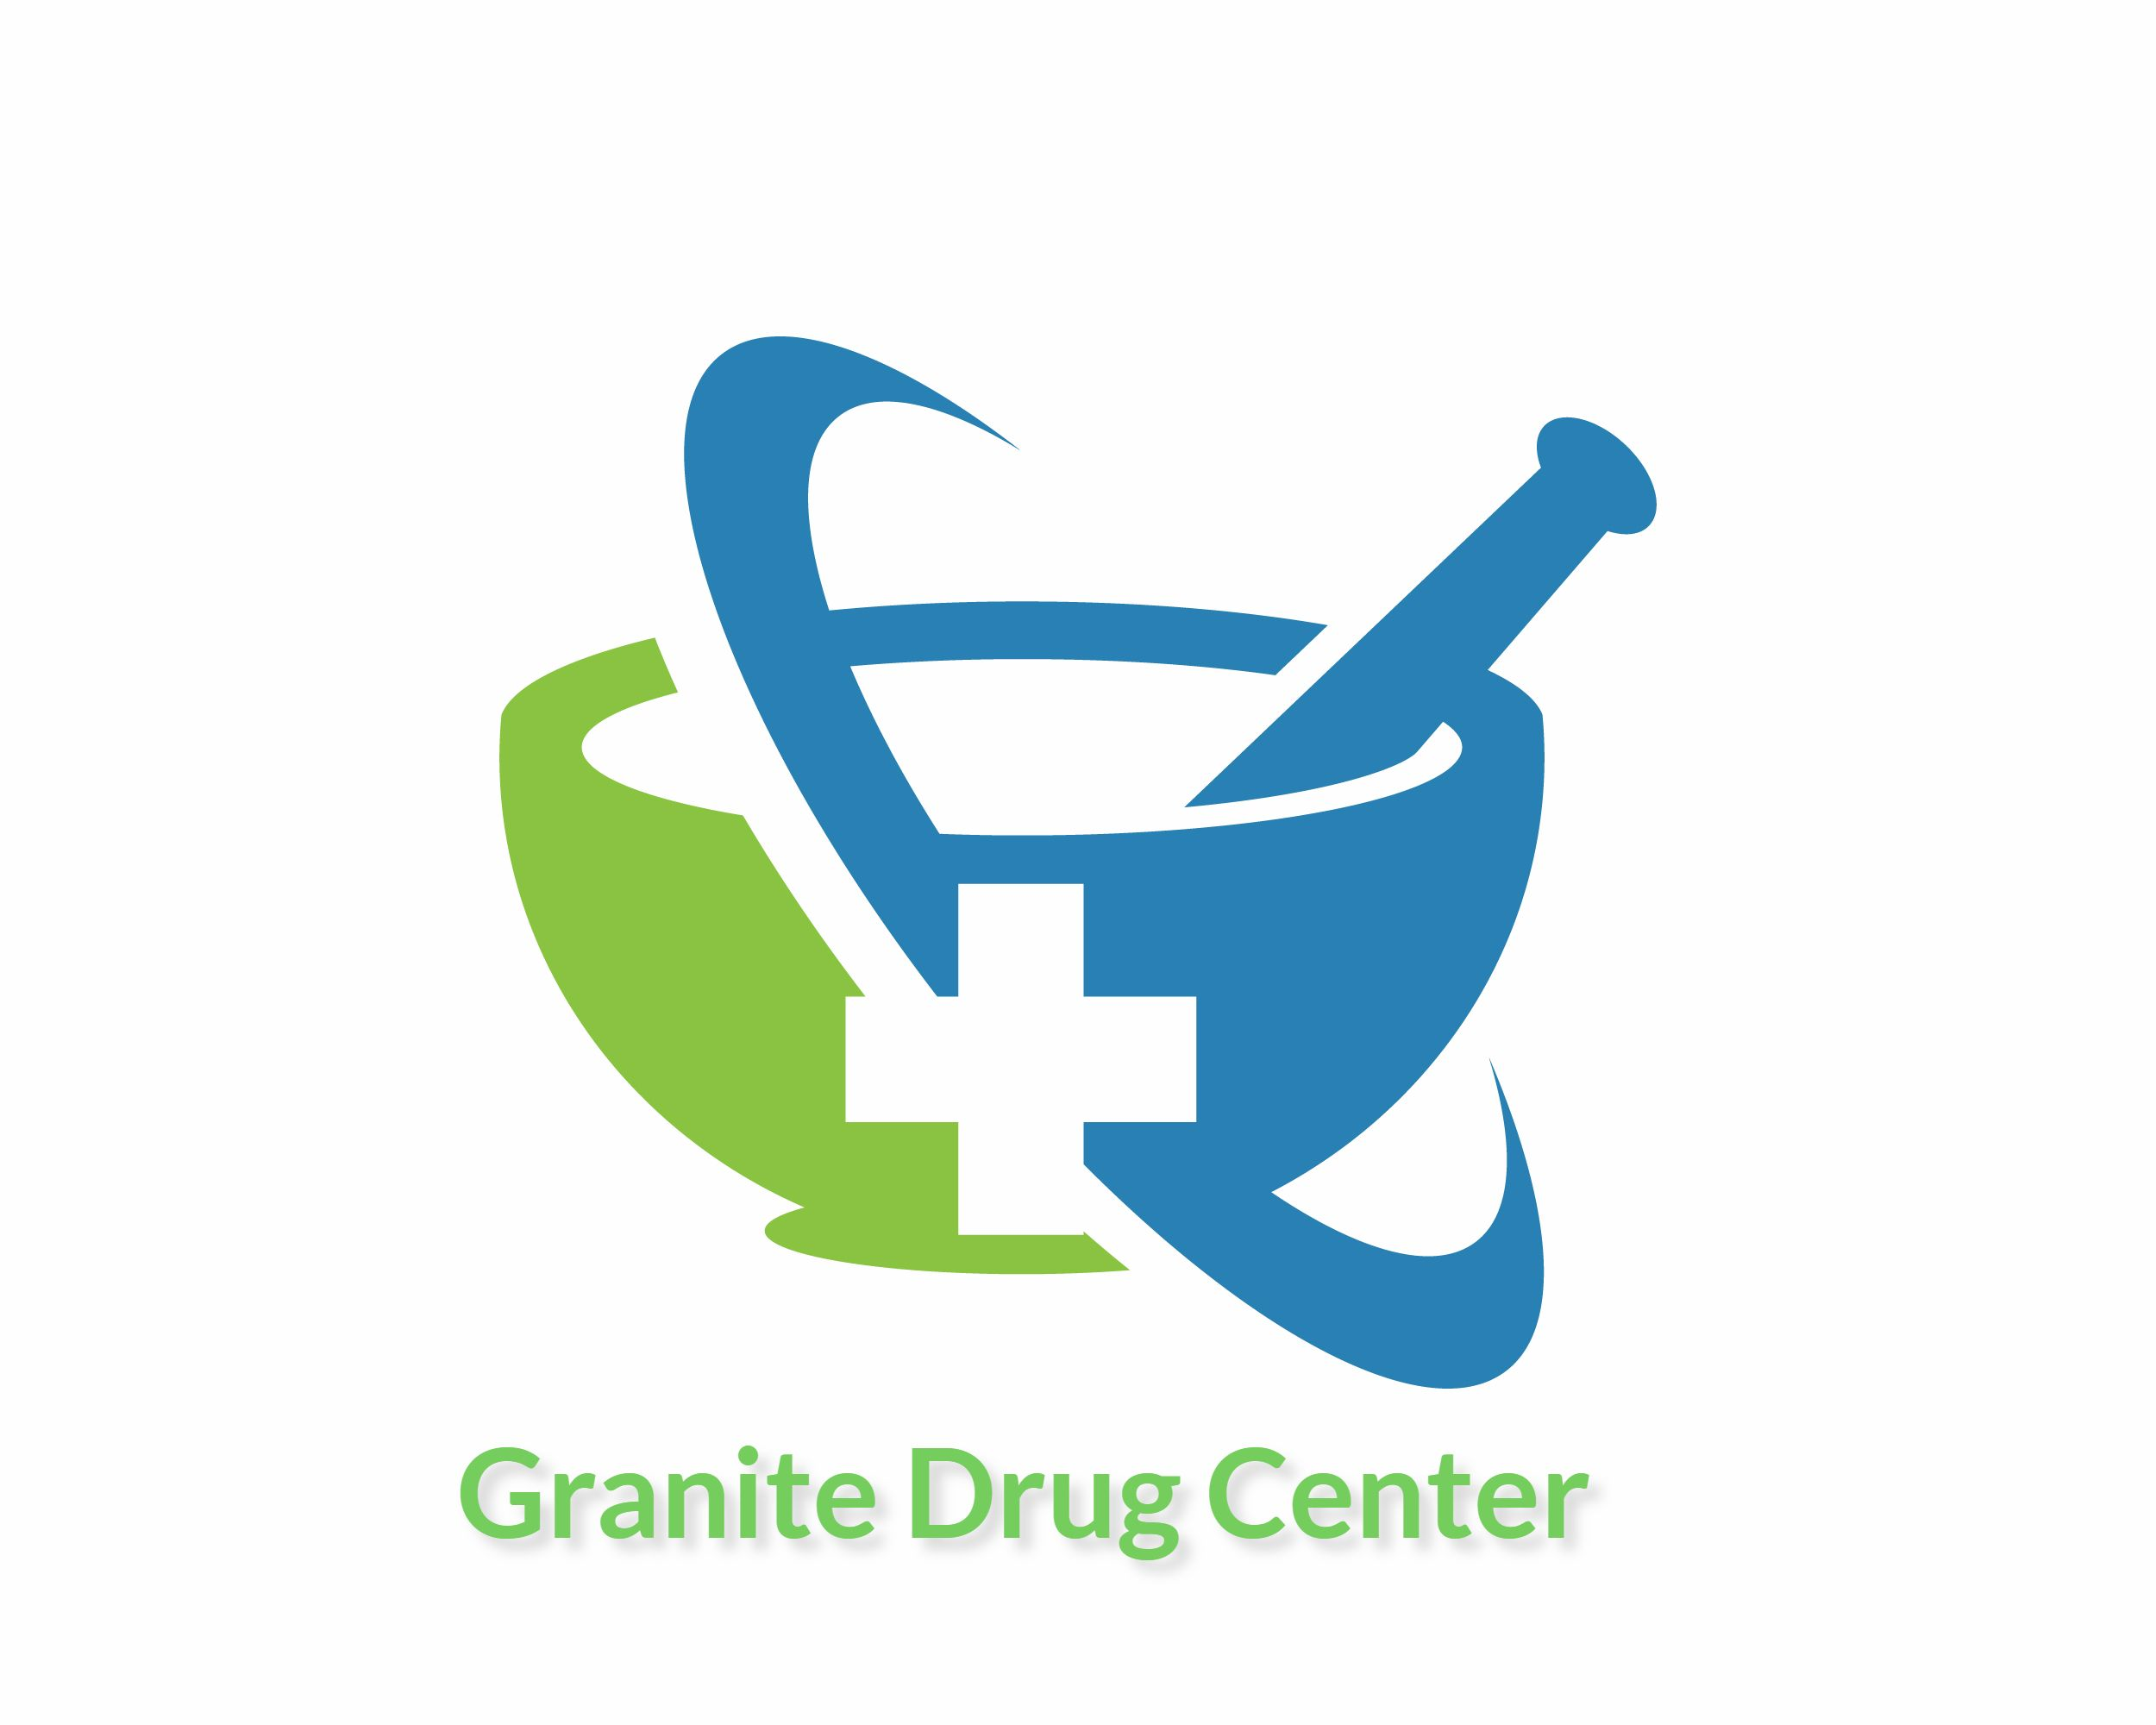 Granite Drug Center